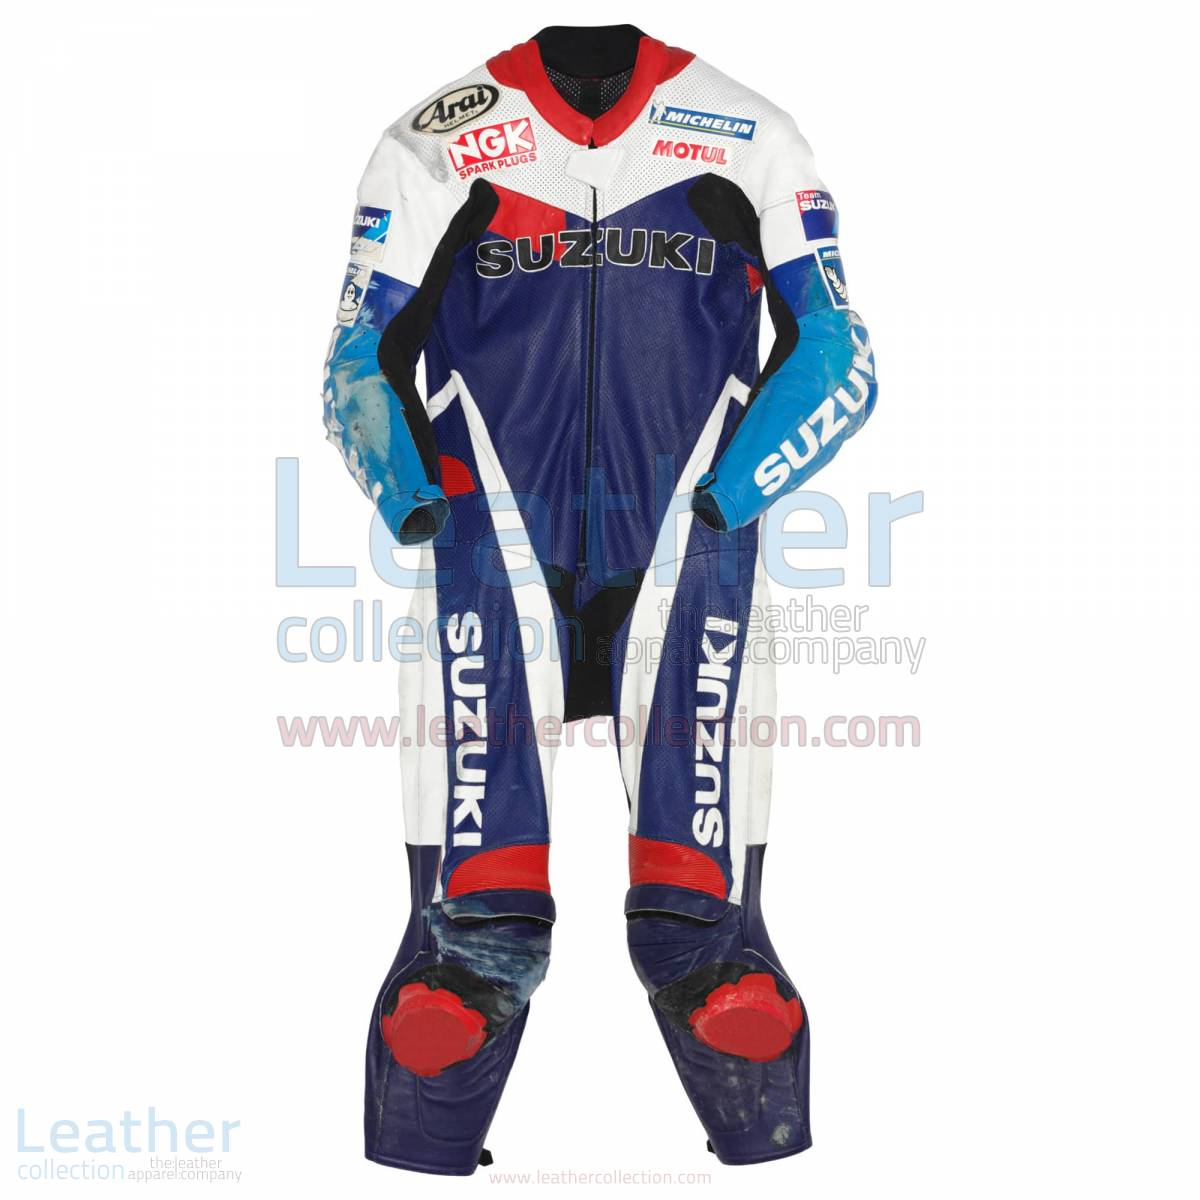 Kenny Roberts jr Suzuki GP 1999 Leathers – Suzuki Suit